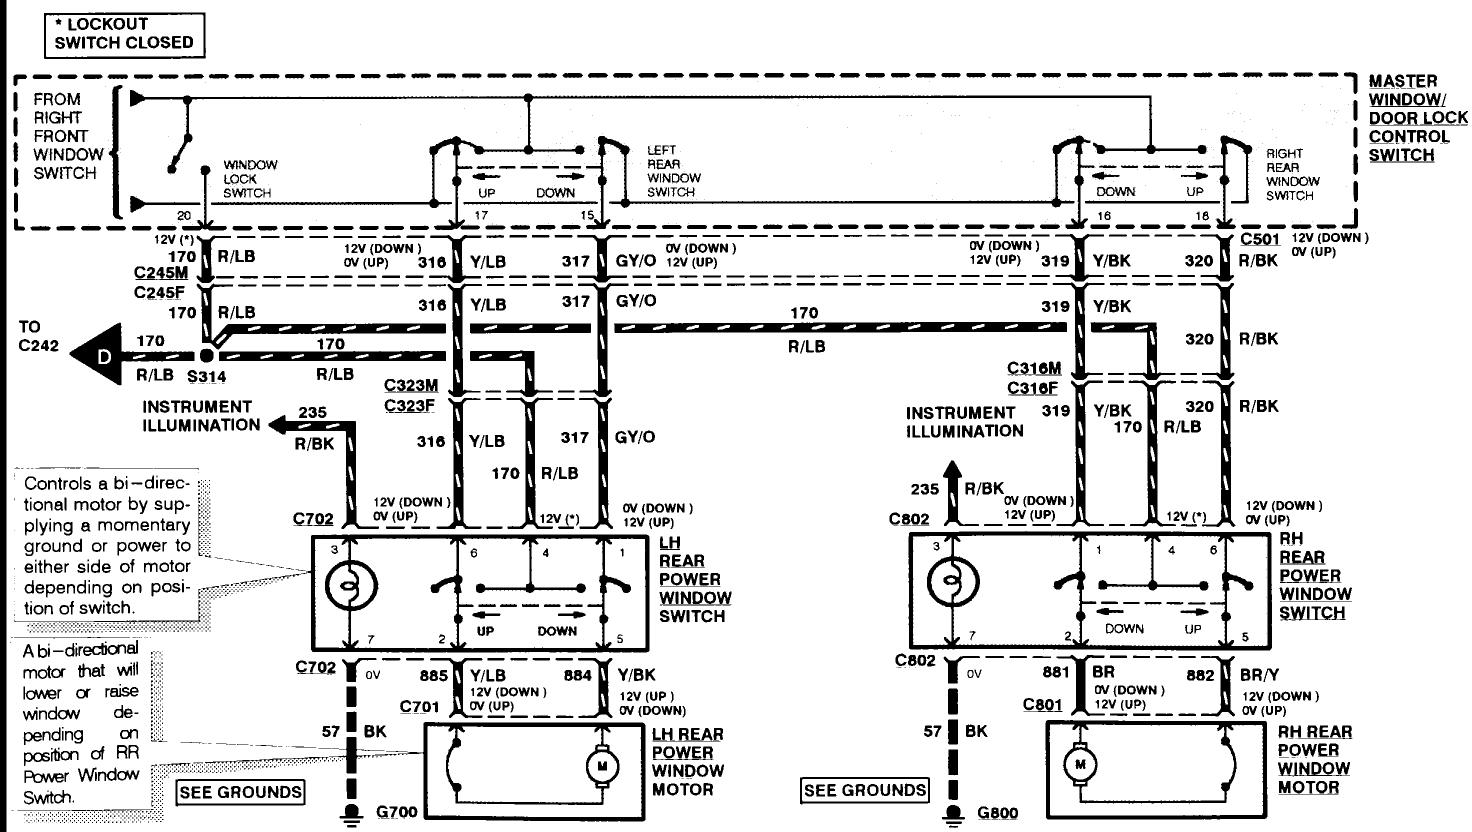 97 f150 trailer wiring diagram - fancy 97 f150 wiring diagram collection  electrical circuit diagram 3l